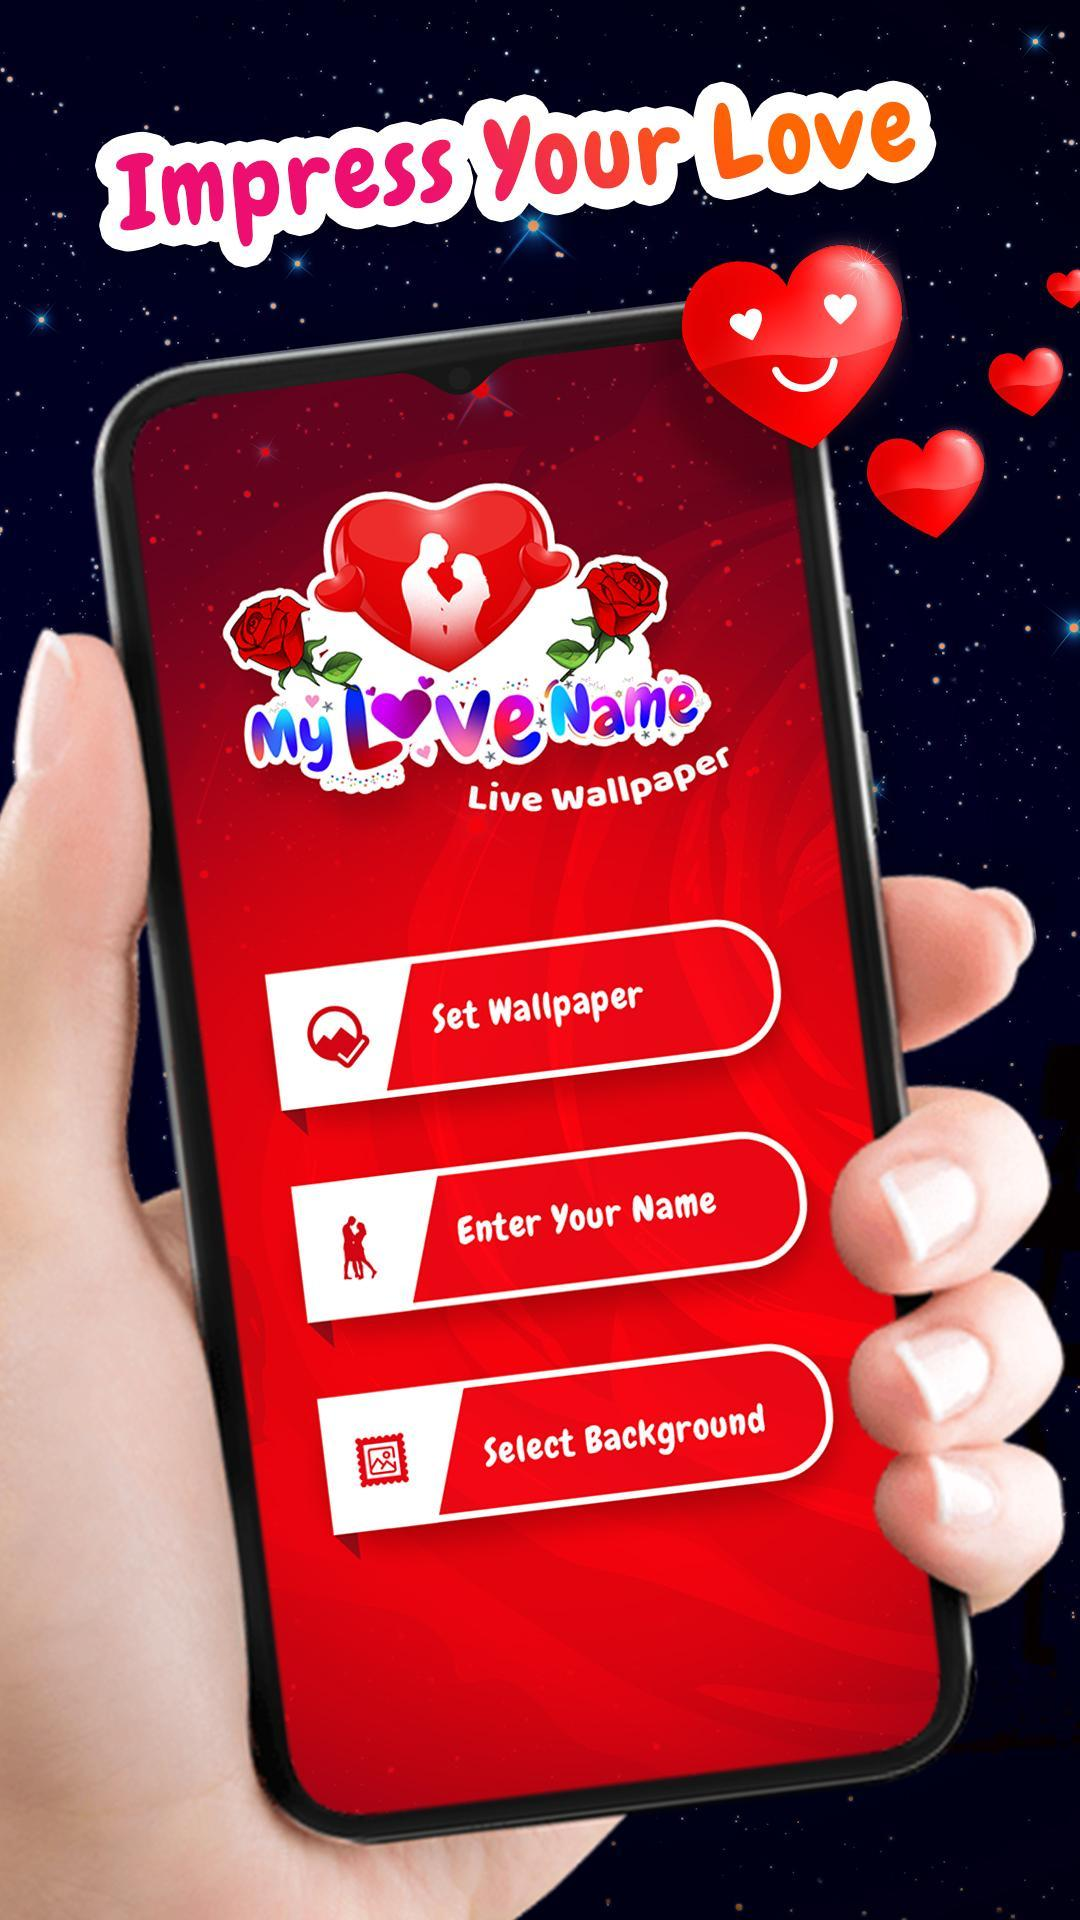 My Love Name Live Wallpaper For Android Apk Download